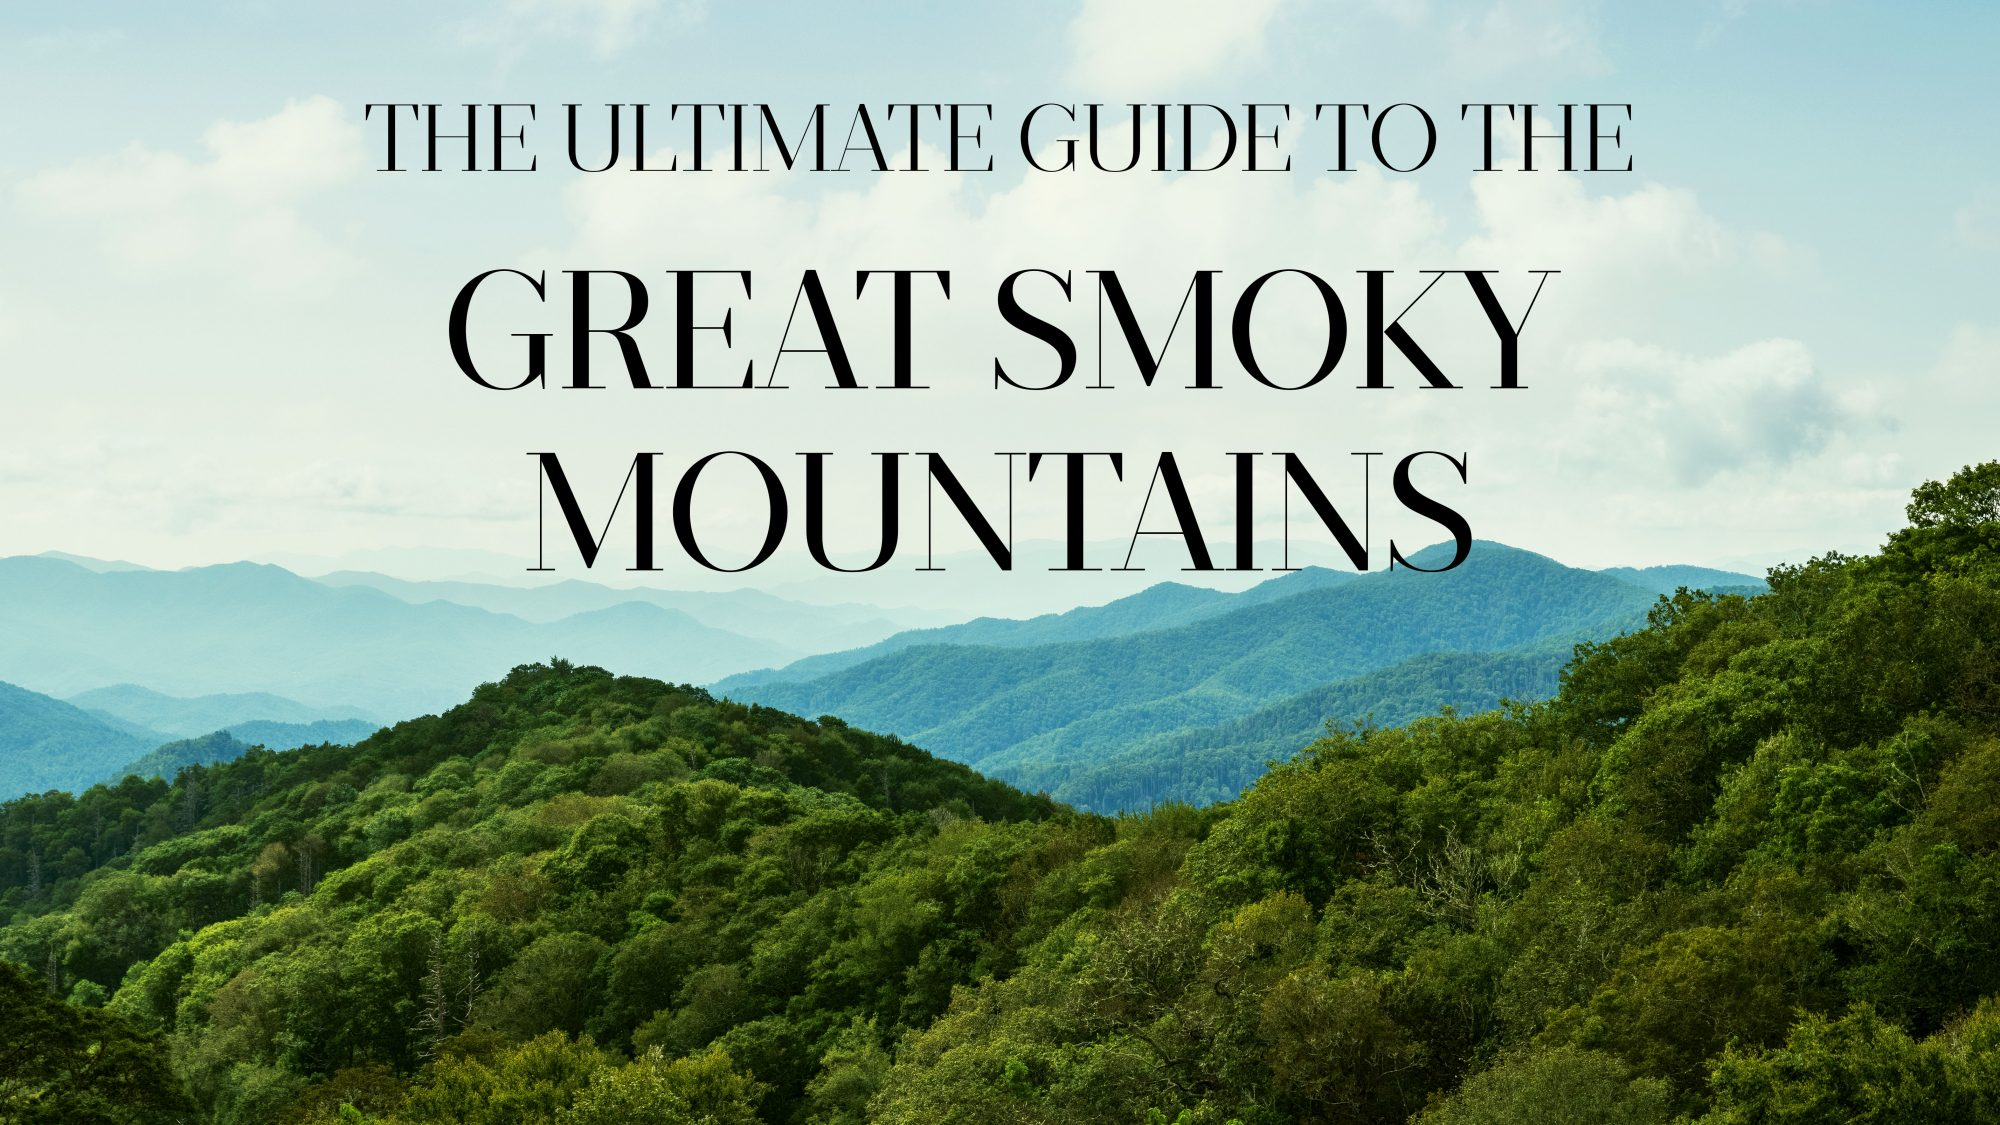 The Ultimate Guide to the Great Smoky Mountains